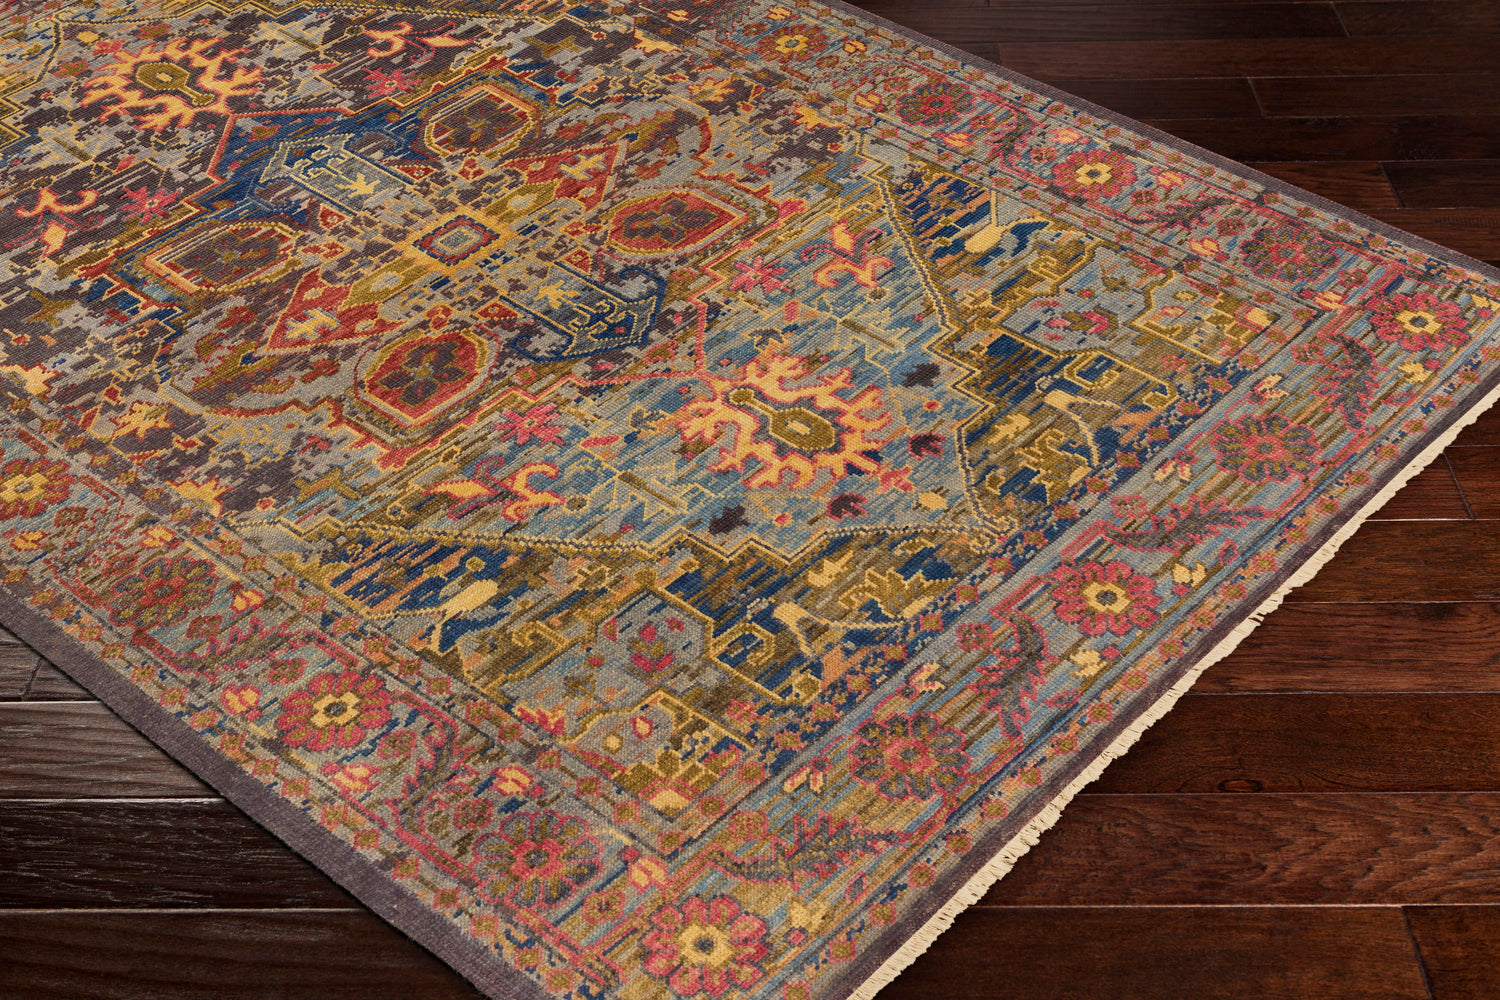 Cappadocia Area Rug 4-Indoor Area Rug-Surya-Wall2Wall Furnishings